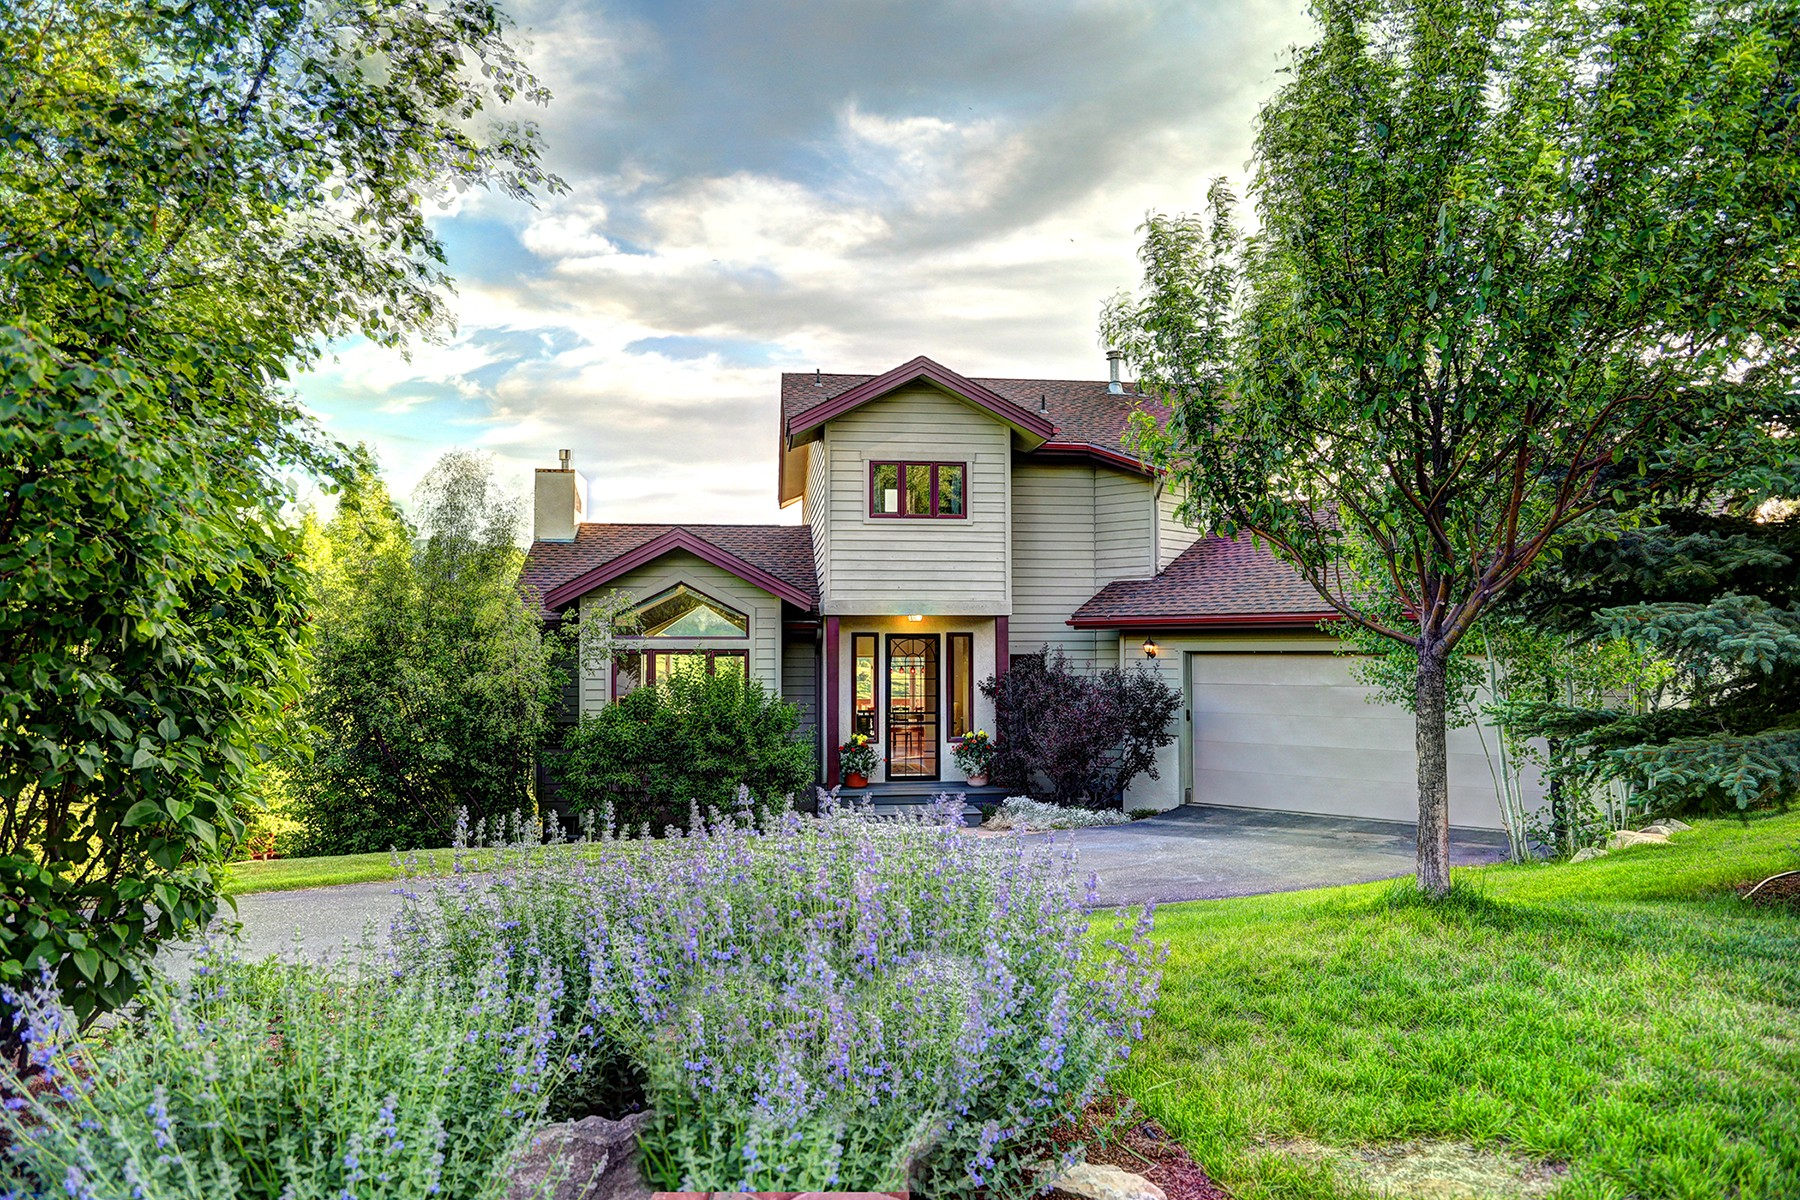 Single Family Home for Active at Peaceful Vail Valley Retreat Perched On A Quiet Cul-de-Sac 33 Lindsay Trail Edwards, Colorado 81632 United States